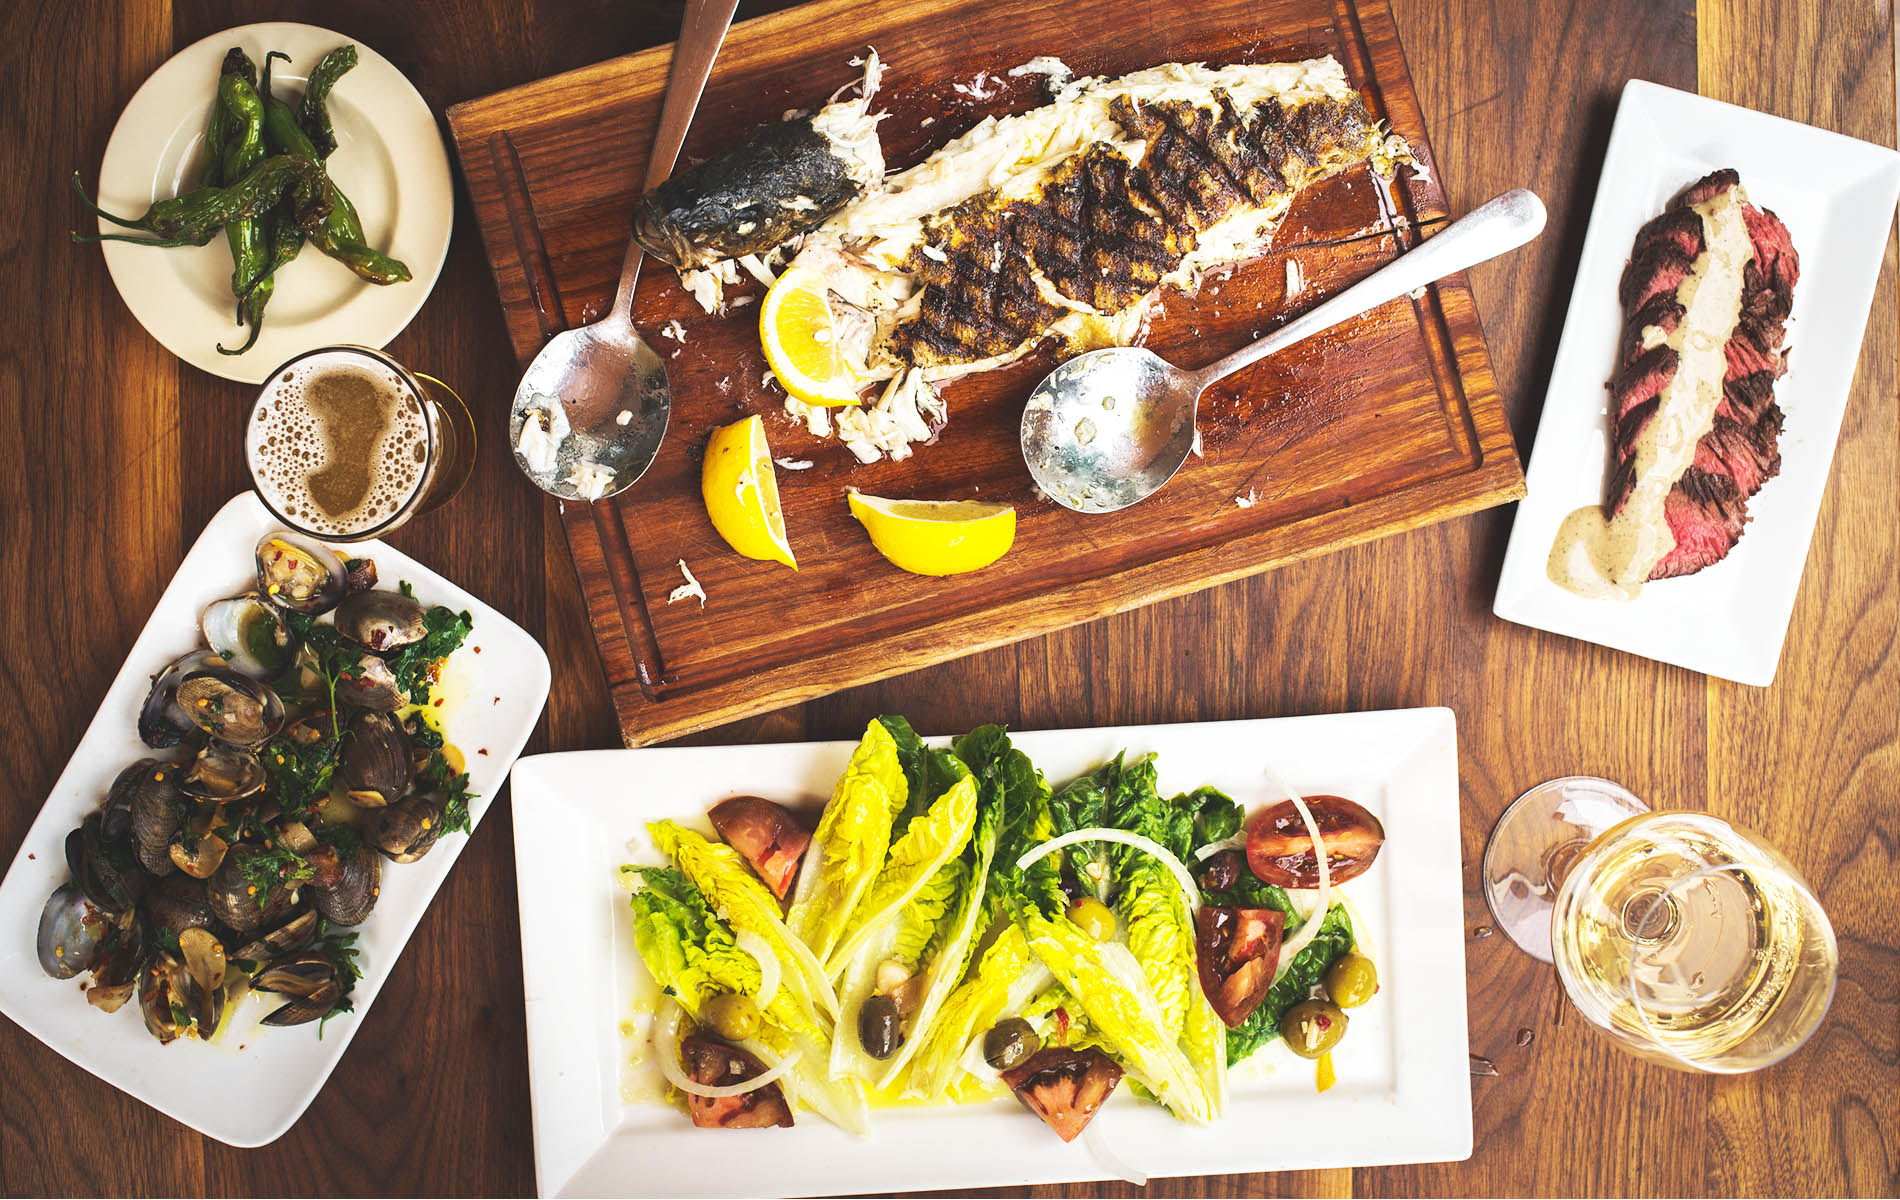 Wood table with food fish grilled lemons and yellow dish